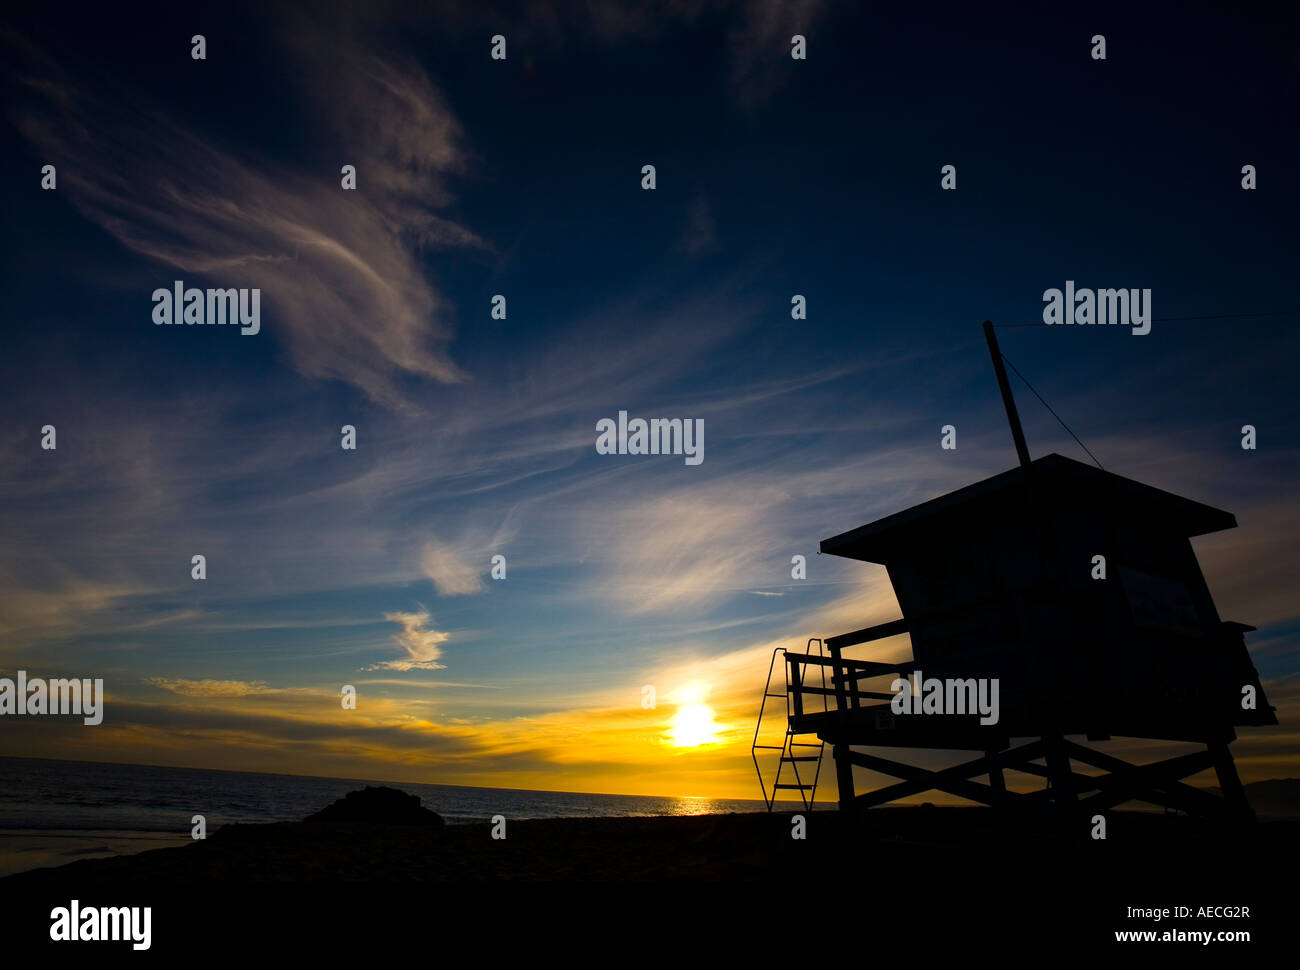 The sun sets in front of a beach hut on Venice Beach California USA on March 5th 2007 - Stock Image